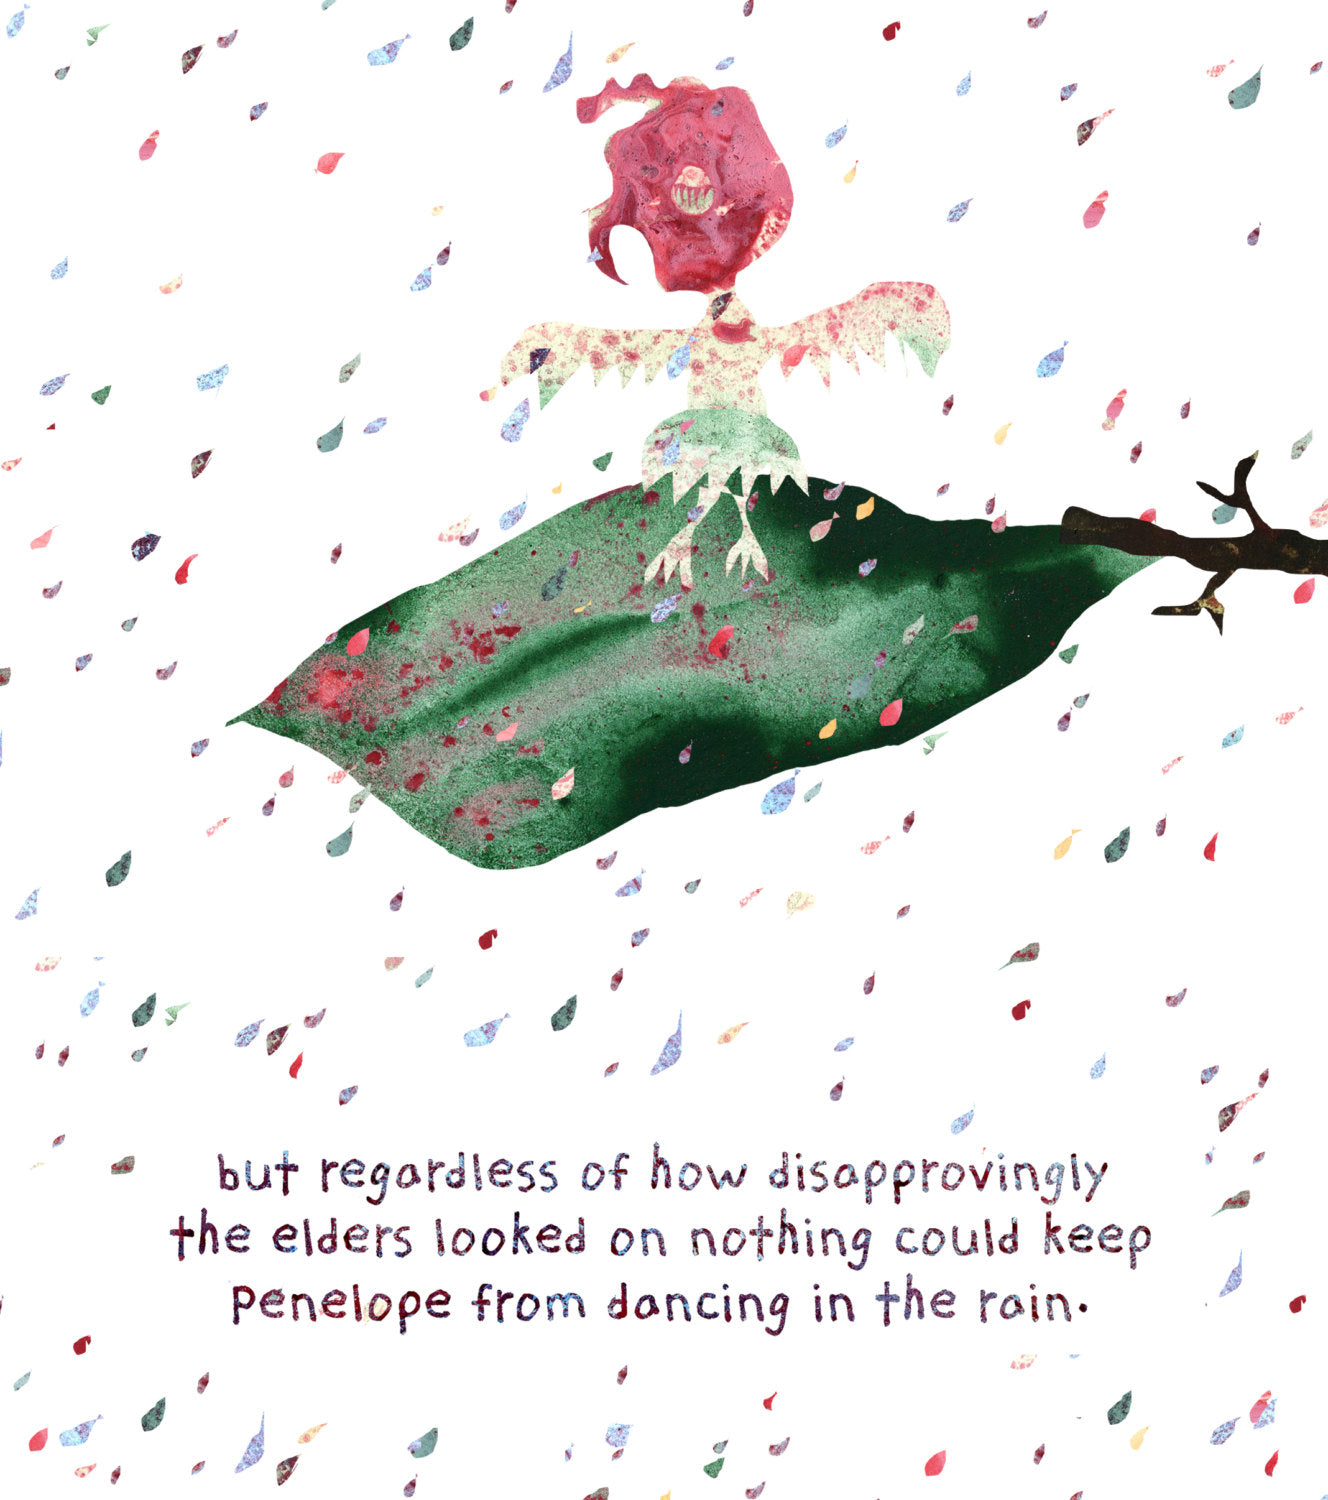 Penelope and The Rain